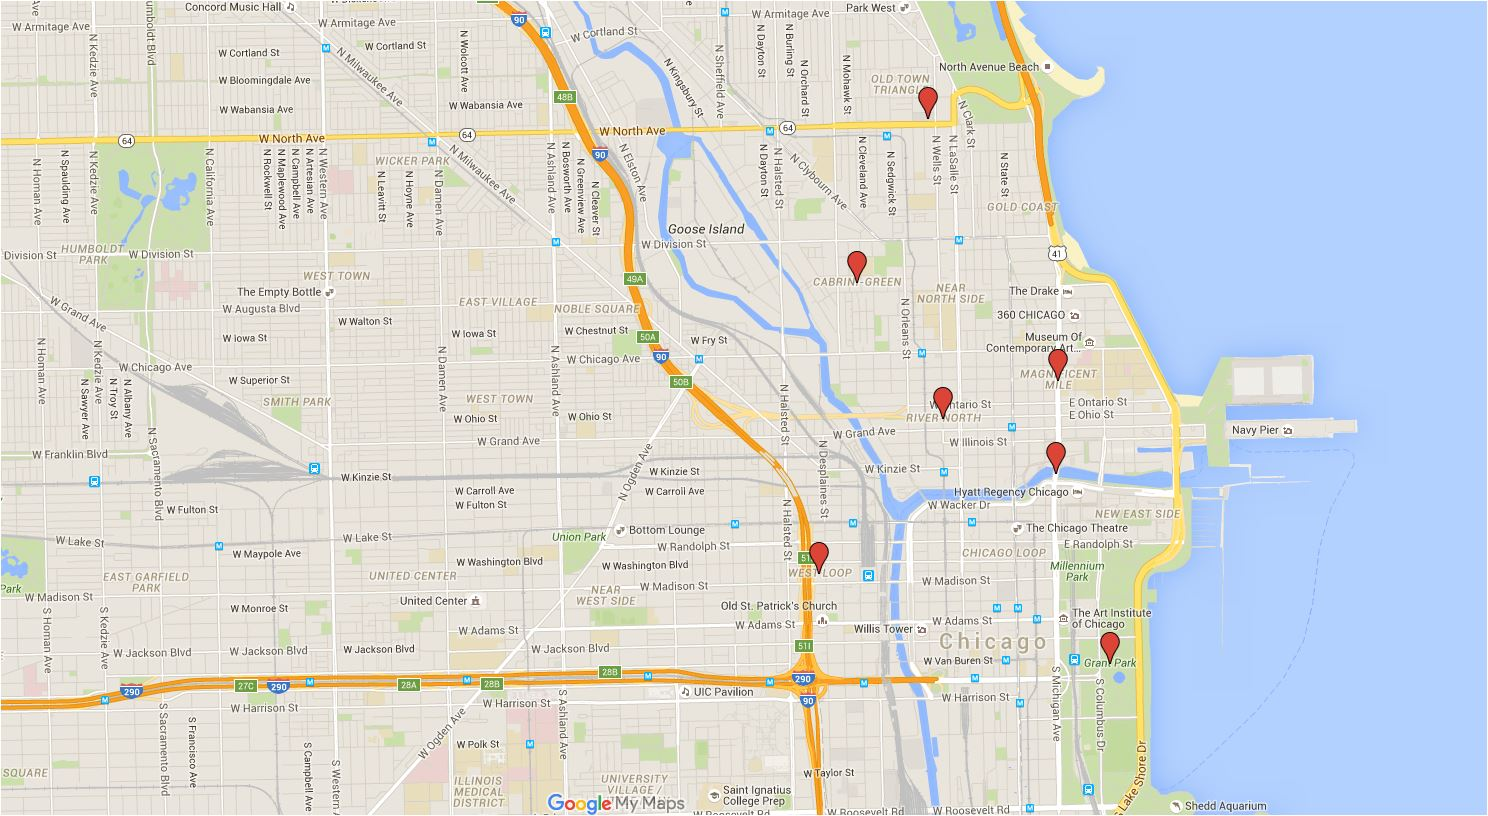 Chicago Seen on TV: An Interactive Map of Windy City Shows